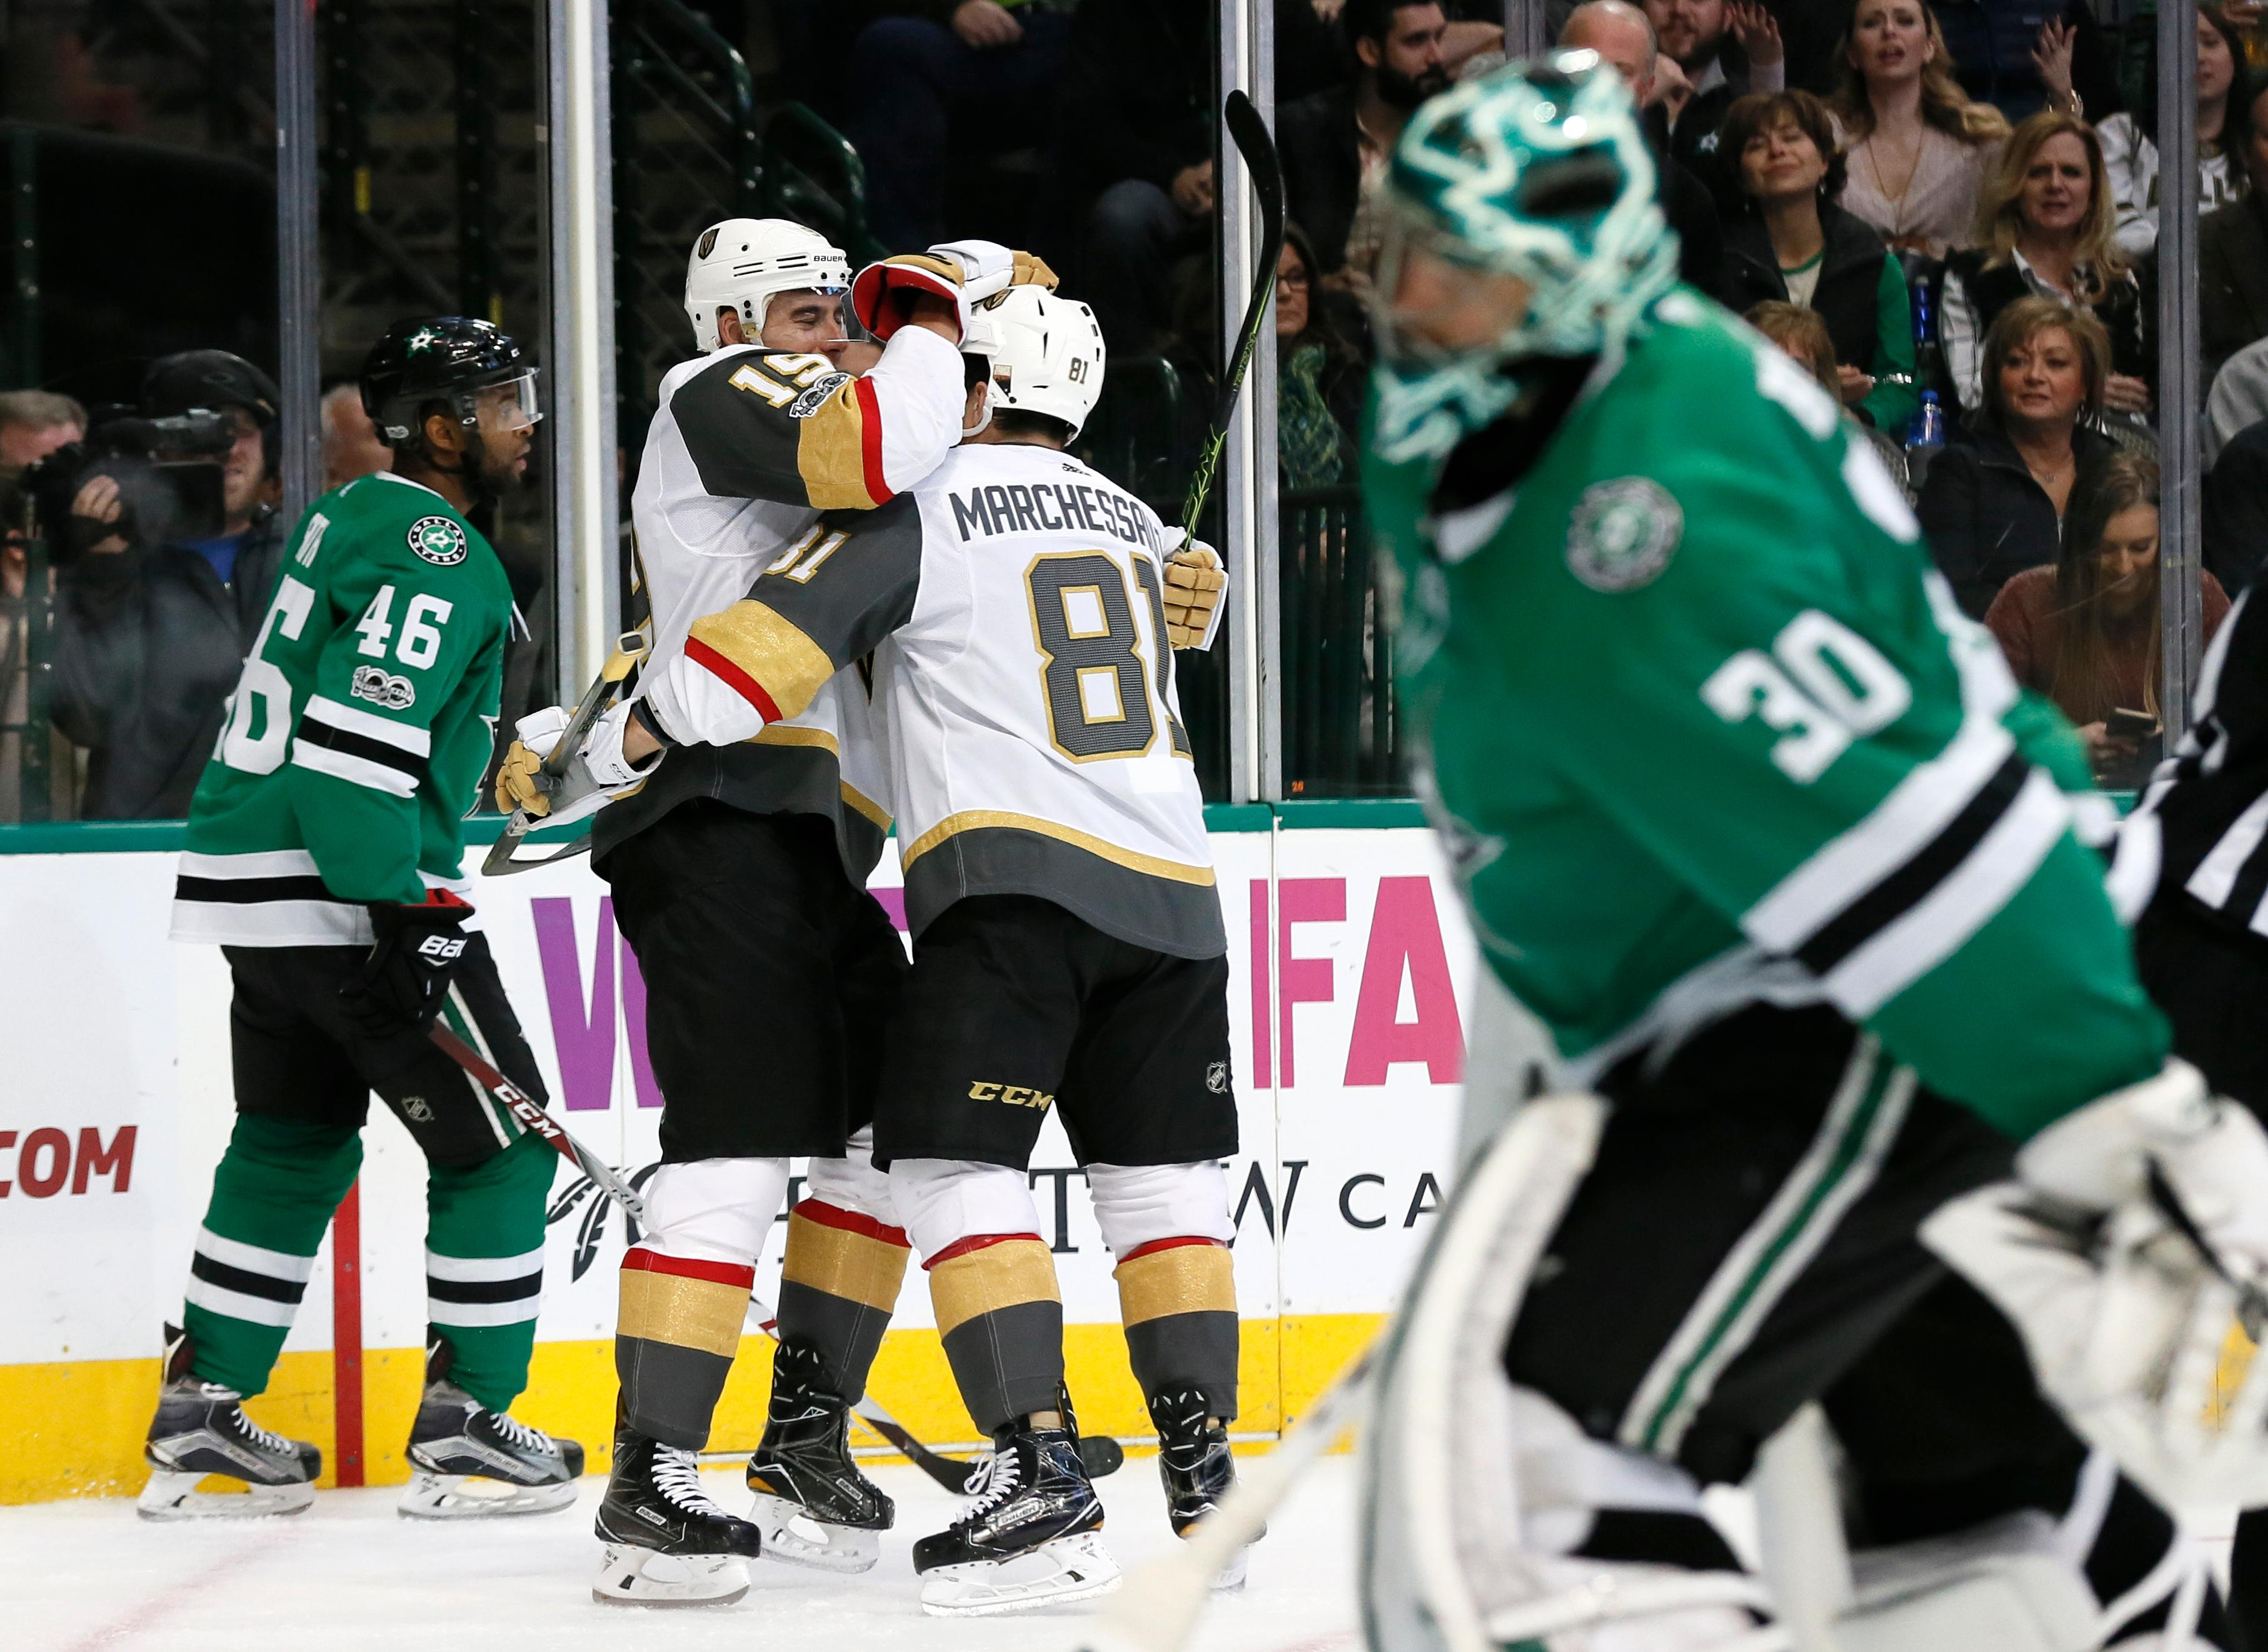 Dallas Stars' Gemel Smith (46) and goalie Ben Bishop (30) skate away as Vegas Golden Knights' Reilly Smith (19) and Jonathan Marchessault (81) celebrate a goal by Smith during the second period of an NHL hockey game, Saturday, Dec. 9, 2017, in Dallas. Marchessault had an assist on the play. (AP Photo/Tony Gutierrez)